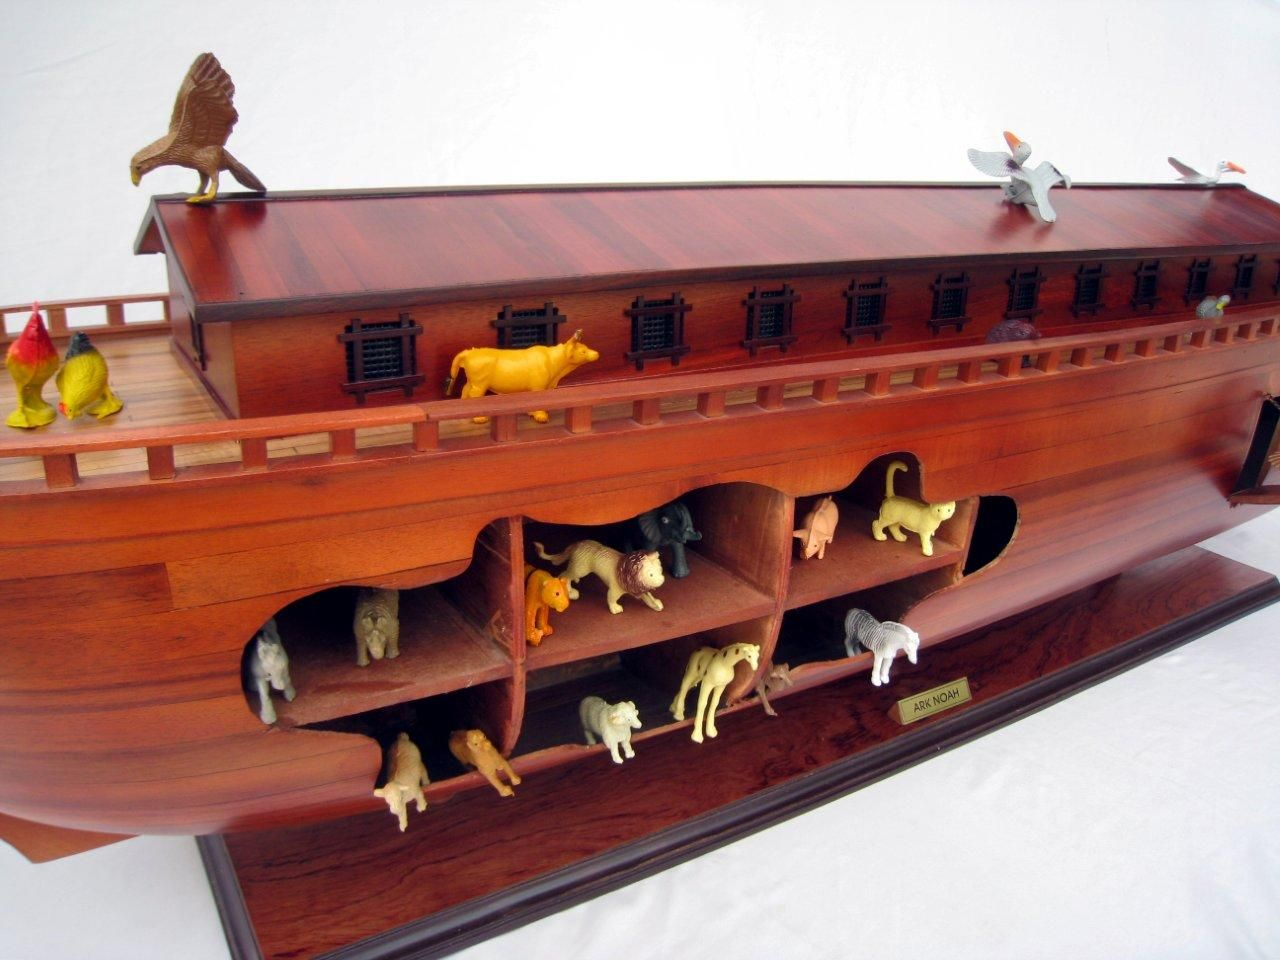 2043-12565-Noahs-Ark-Model-Boat